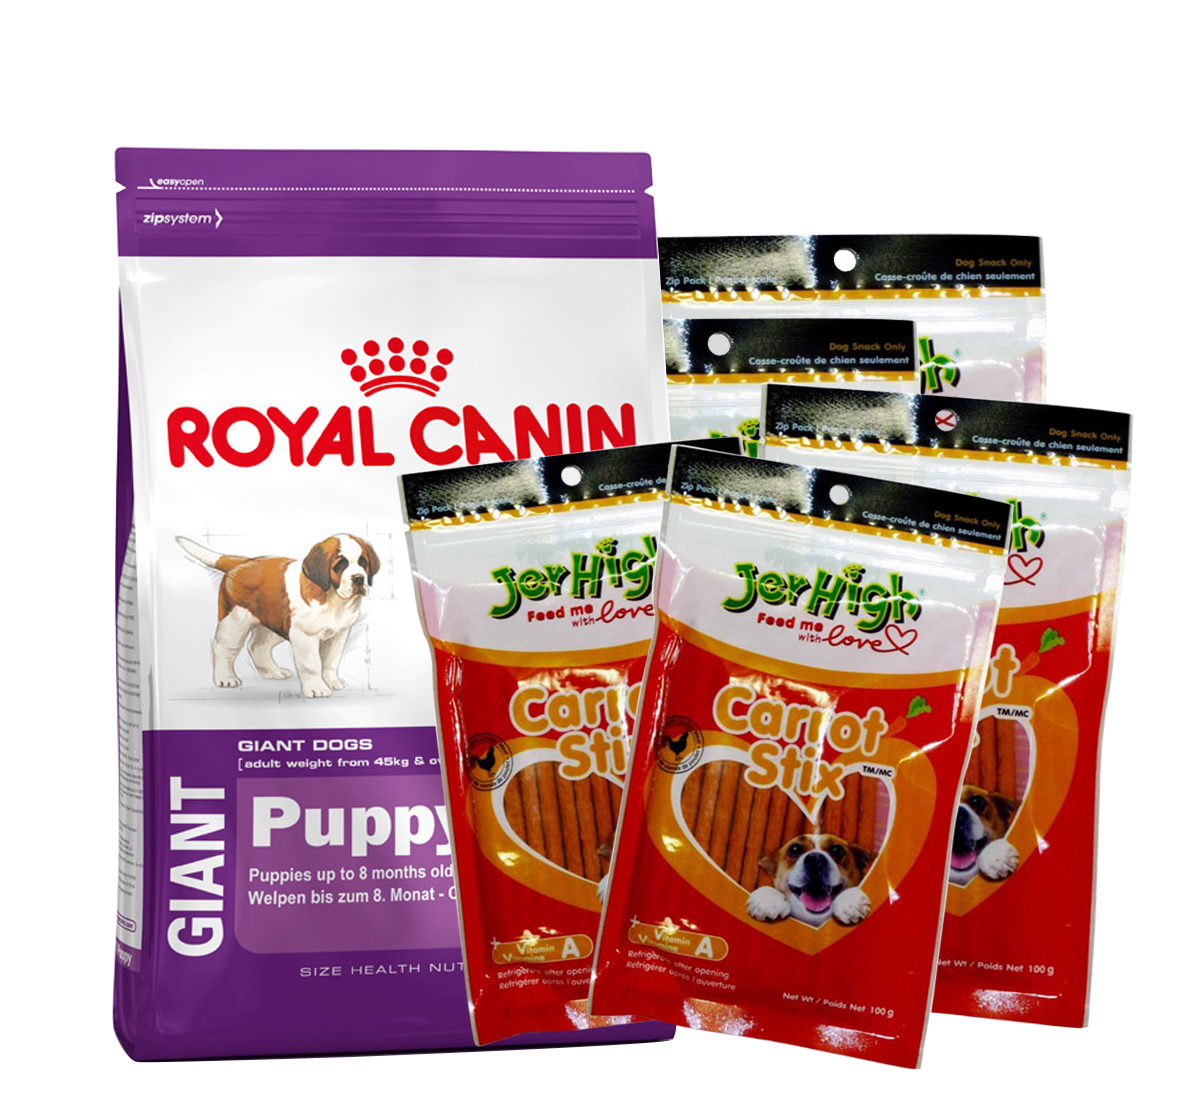 Royal Canin Giant Puppy - 4 Kg With JerHigh Carrot Stick Dog Treats